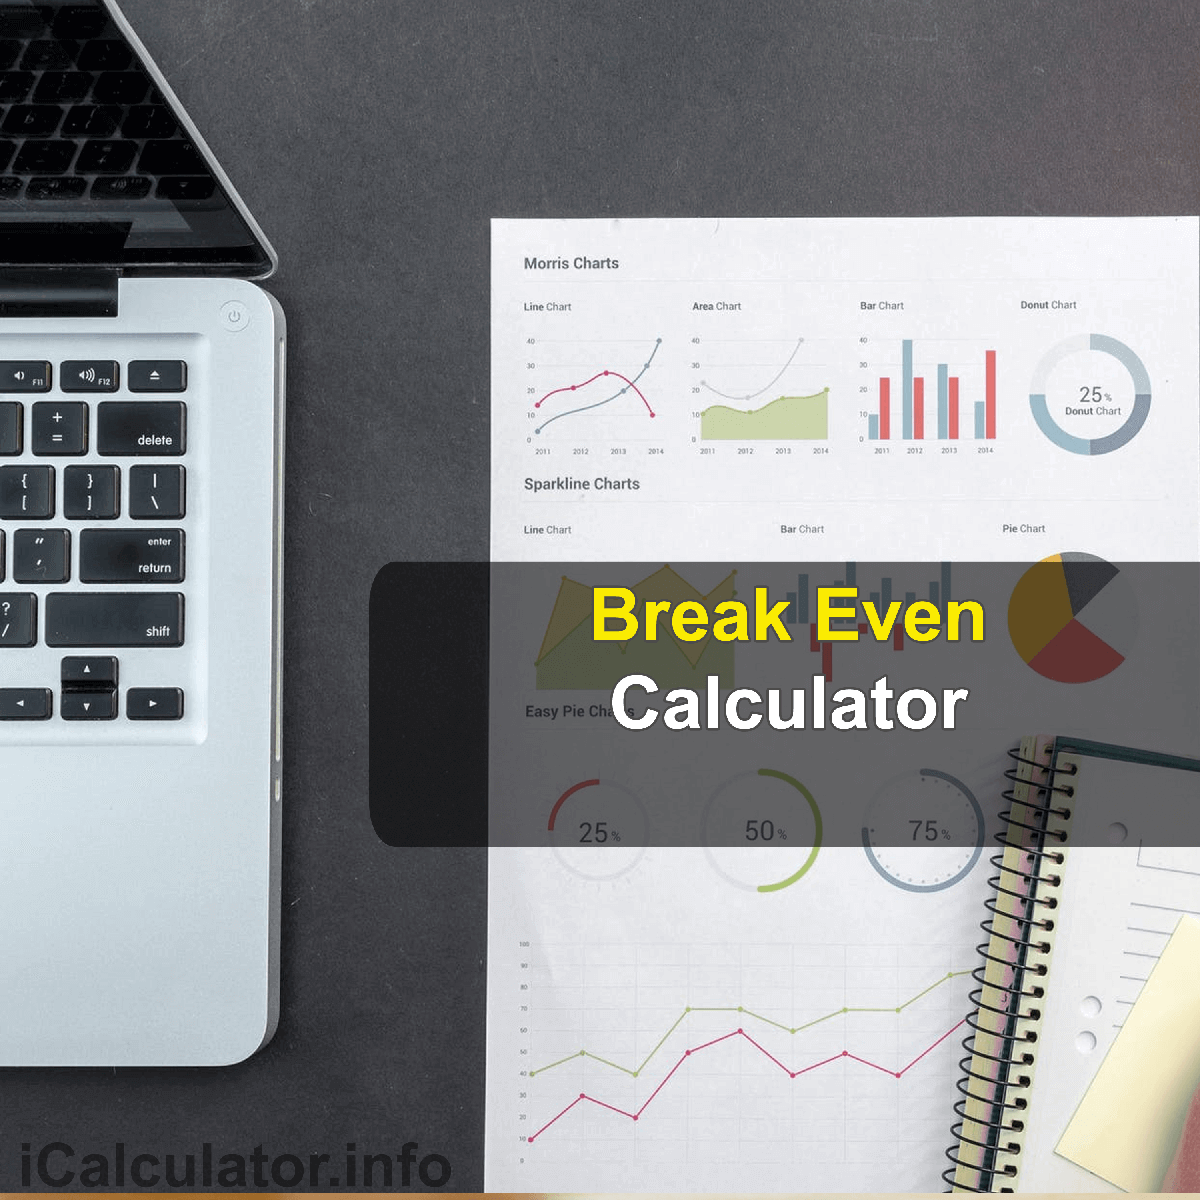 Break Even Calculator. This image provides details of how to calculate the break even point using a calculator and notepad. By using the break even point formula, the Break Even Calculator provides a true calculation of the point at which a business becomes profitable.